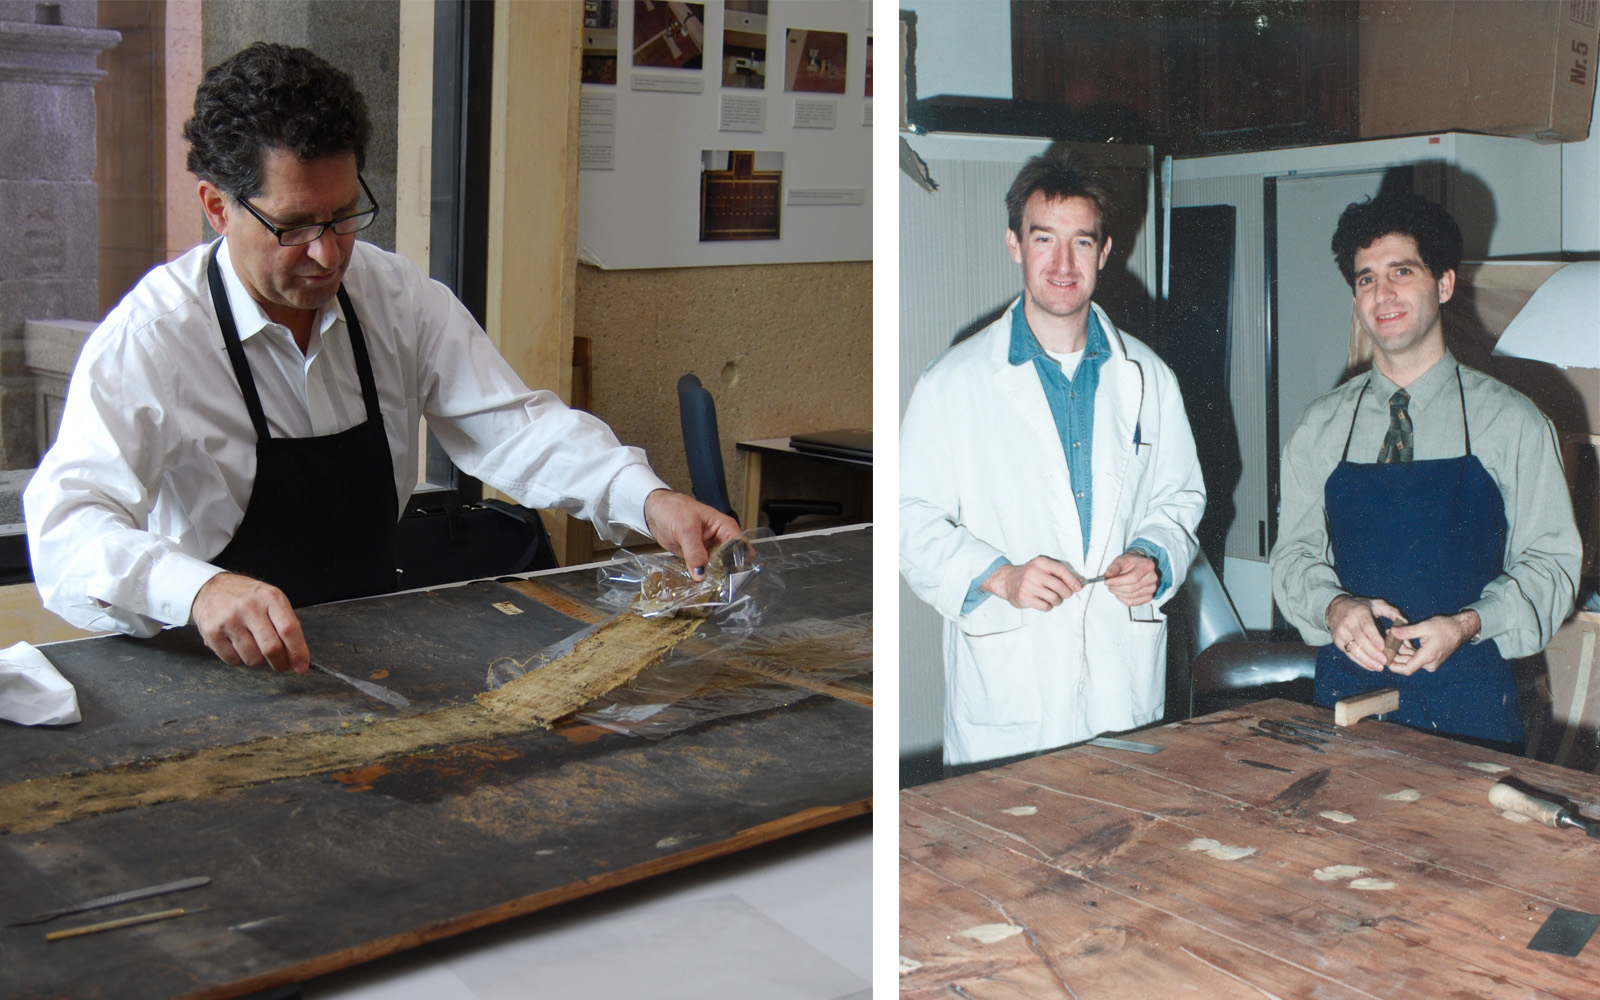 Left: A middle aged man with glasses works on conserving a wood panel painting. Right: Two men stand near a Rogier van der Weyden painting in 1991.